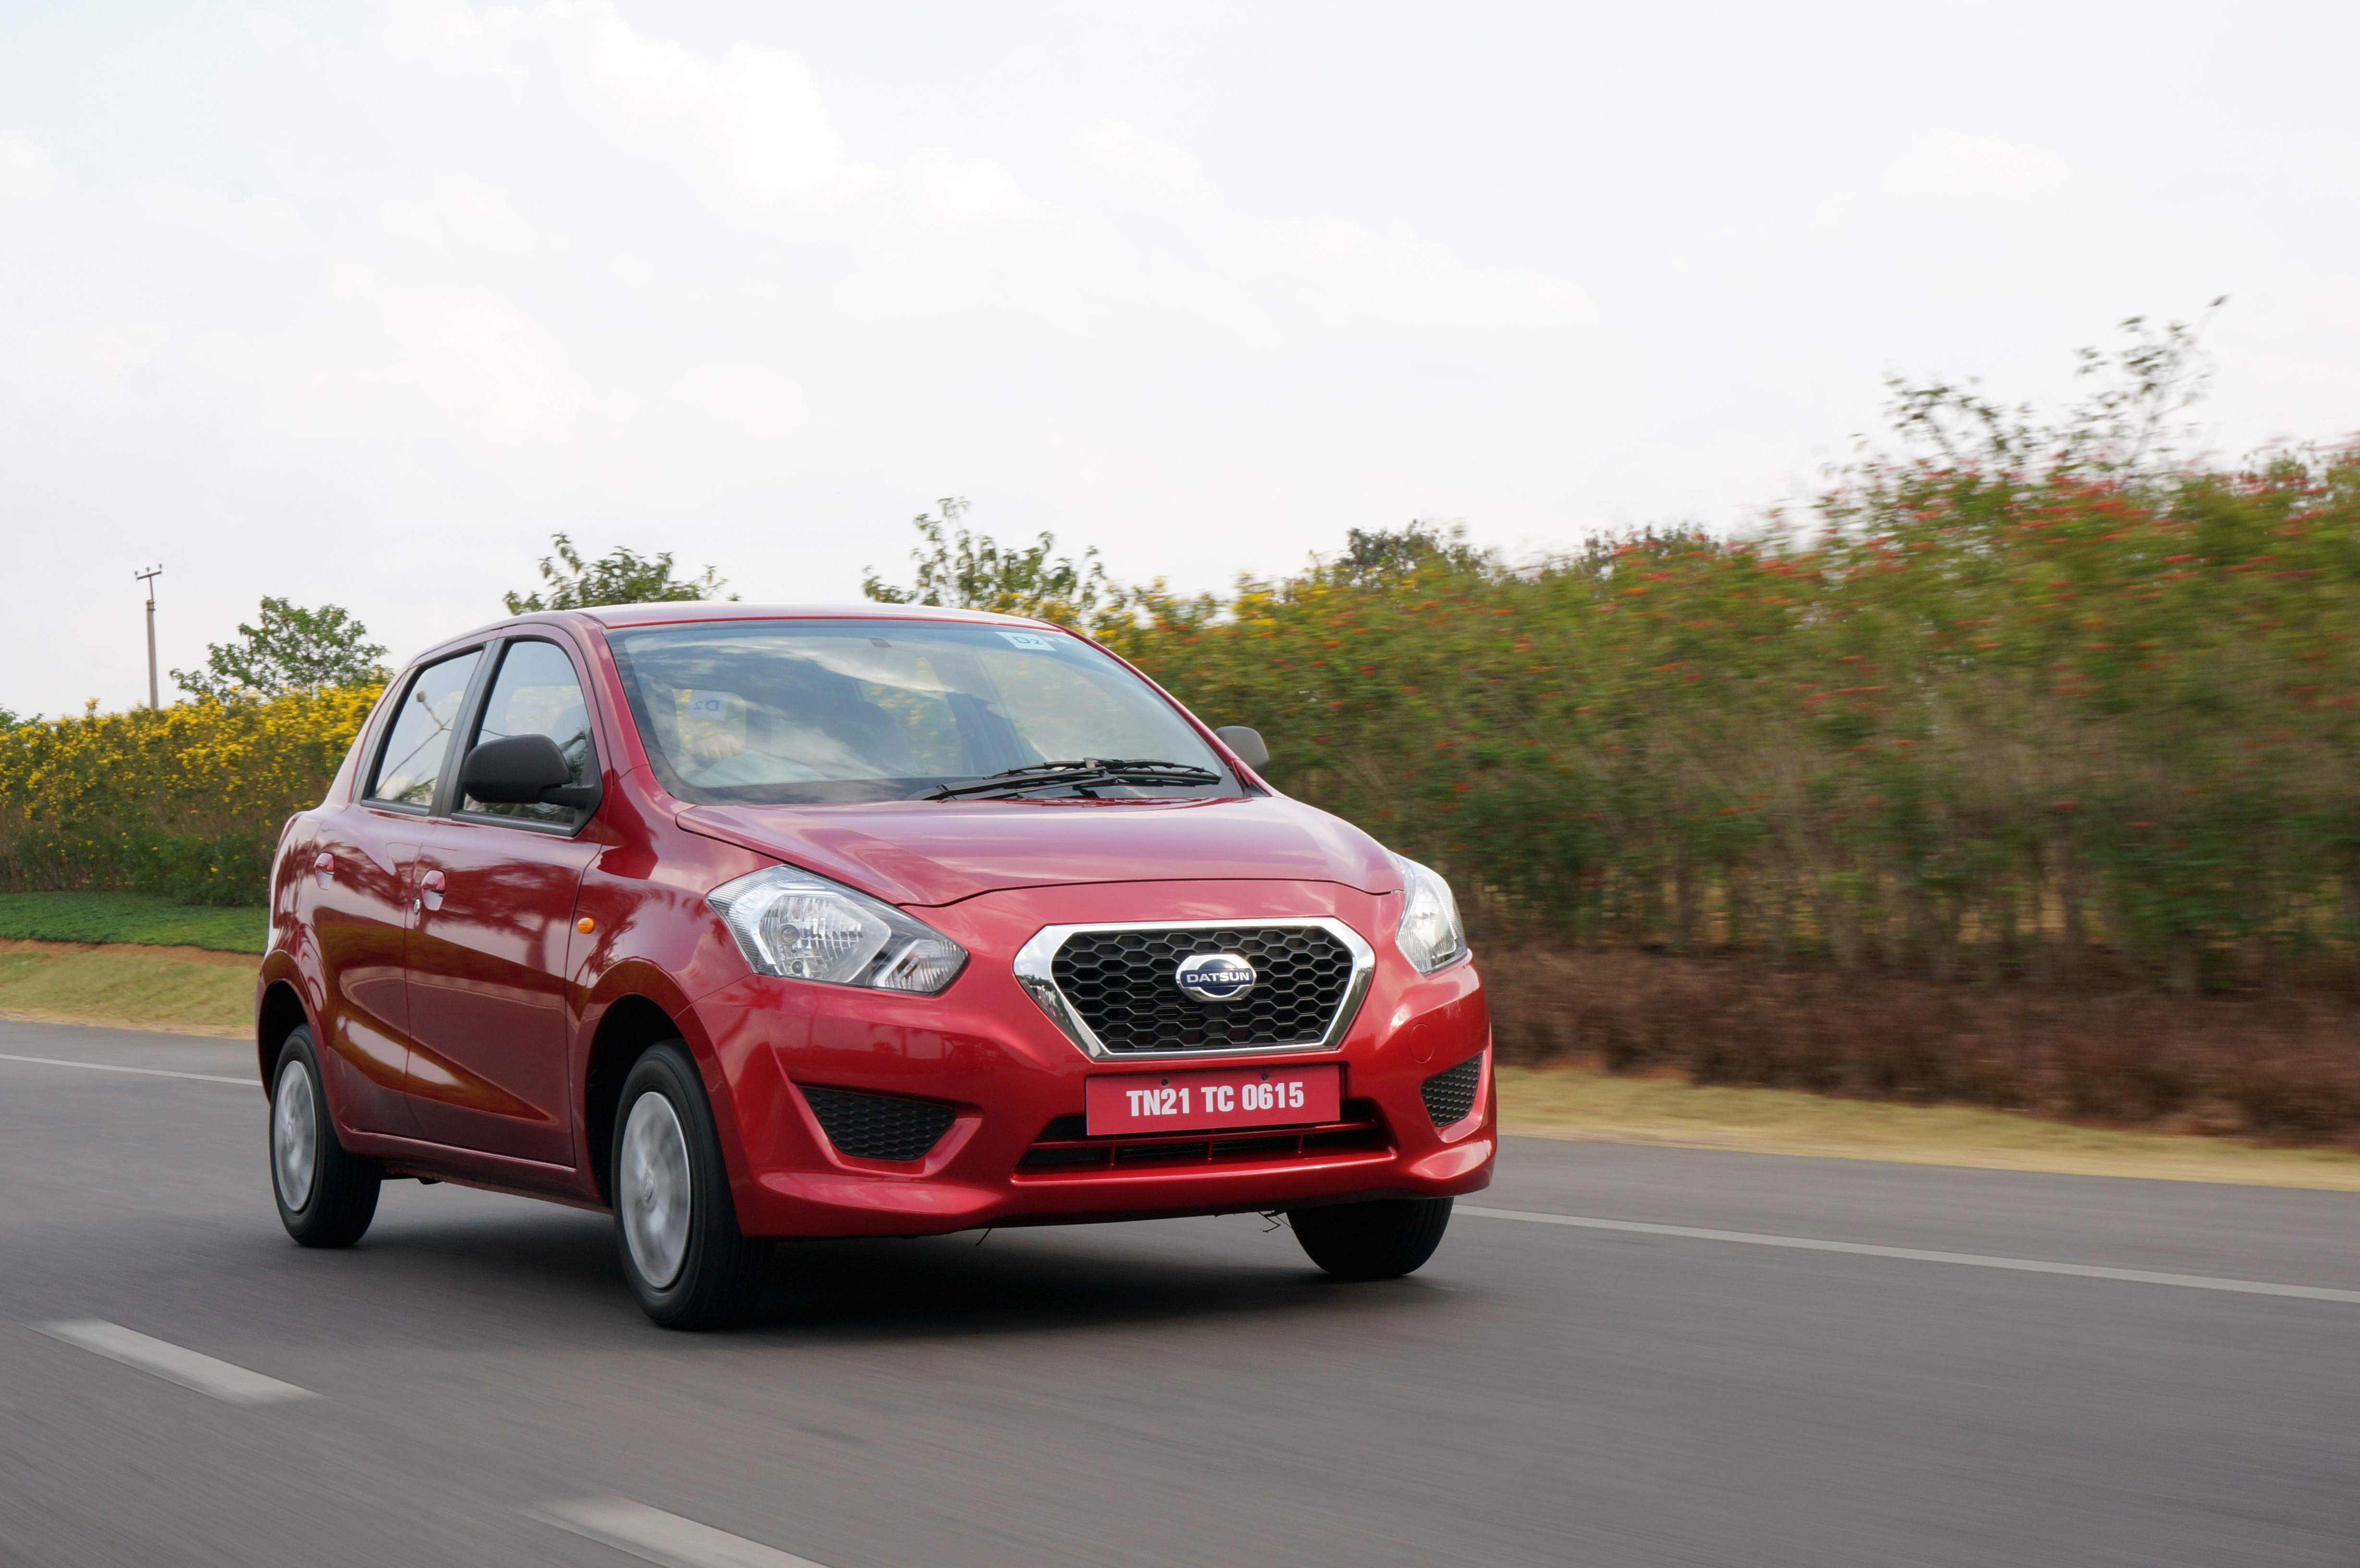 Festive season benefits on the Datsun Go